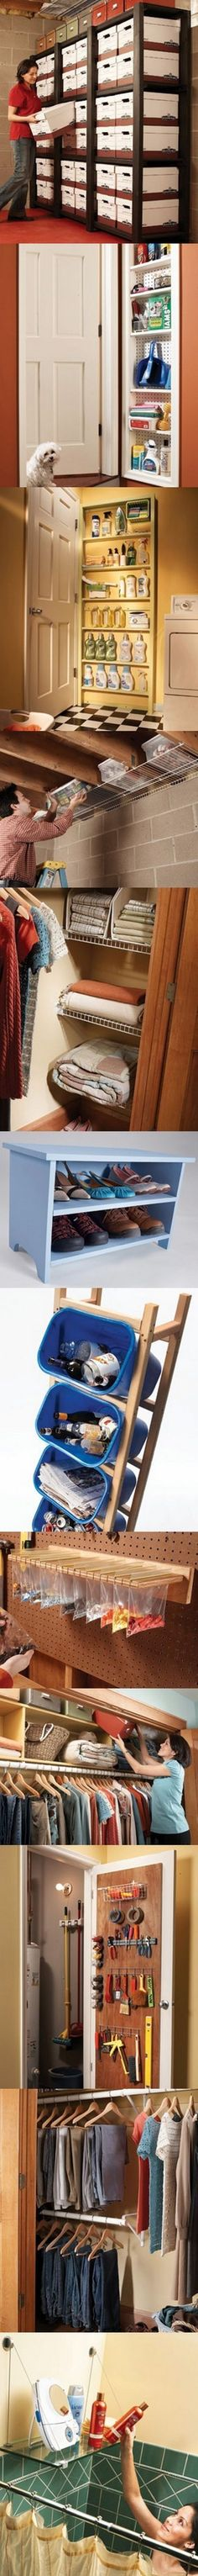 Cool Storage solutions 021